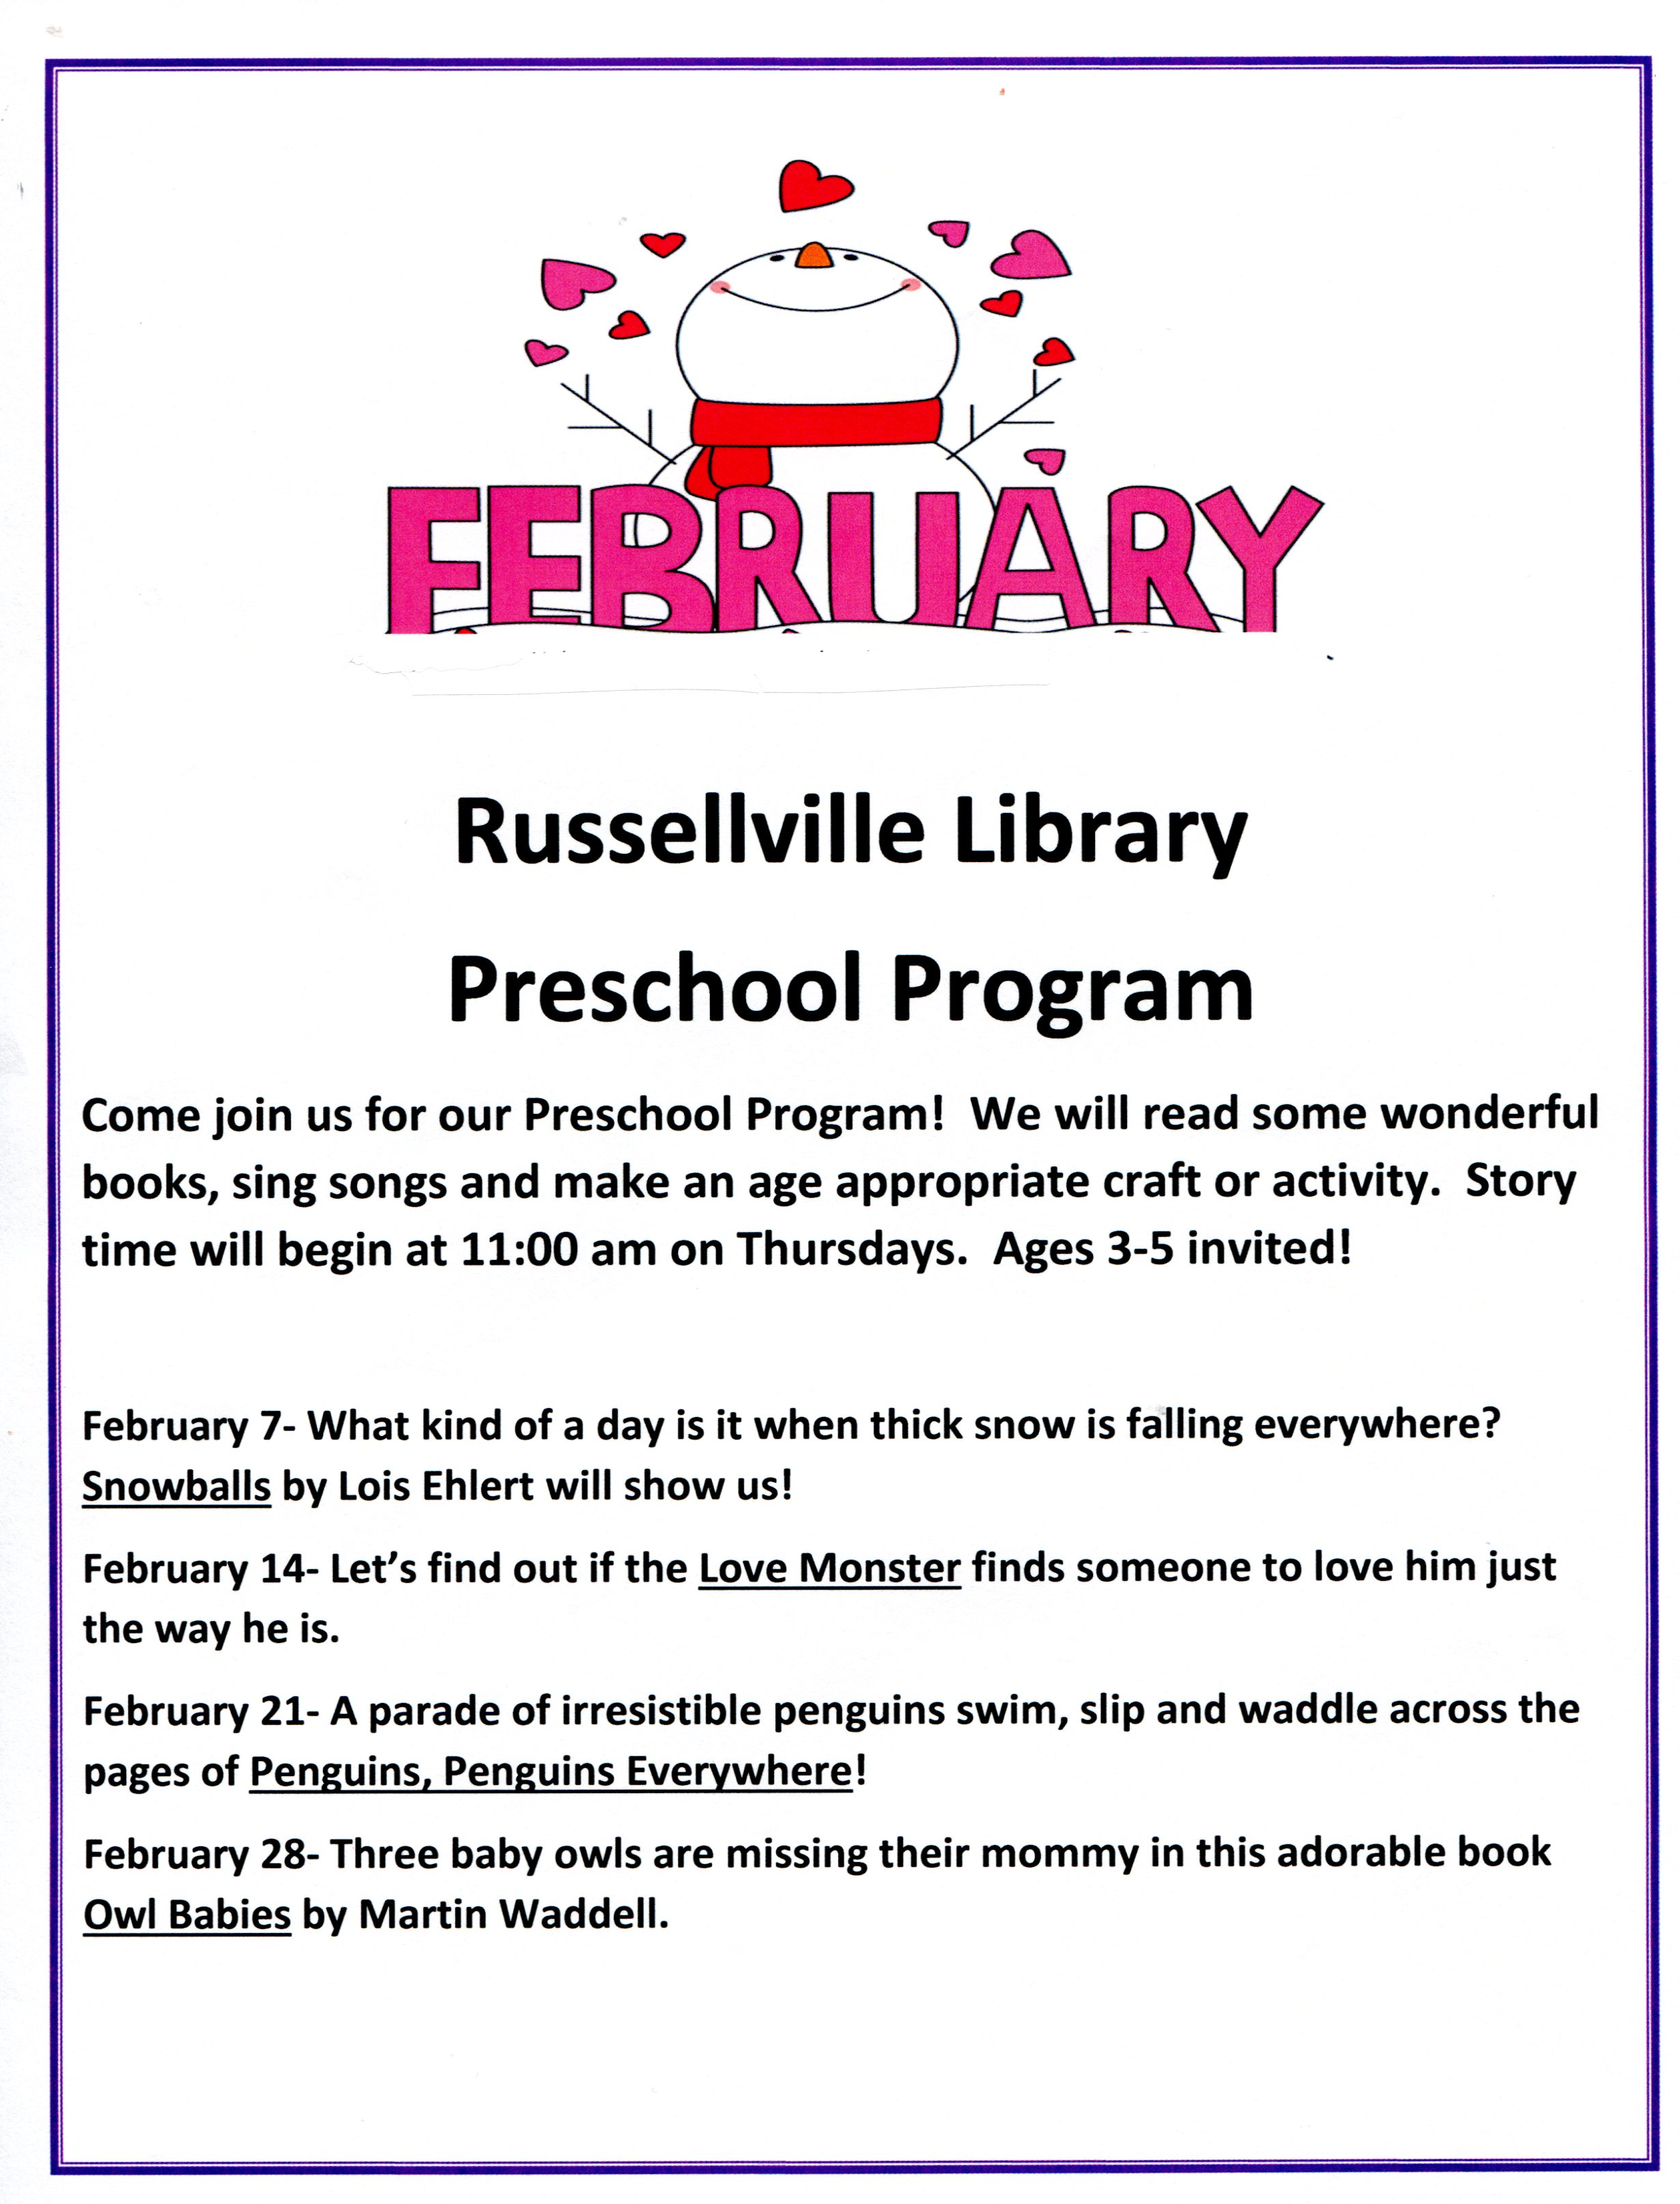 Russellville Preschool Program - 2 to 5 year olds